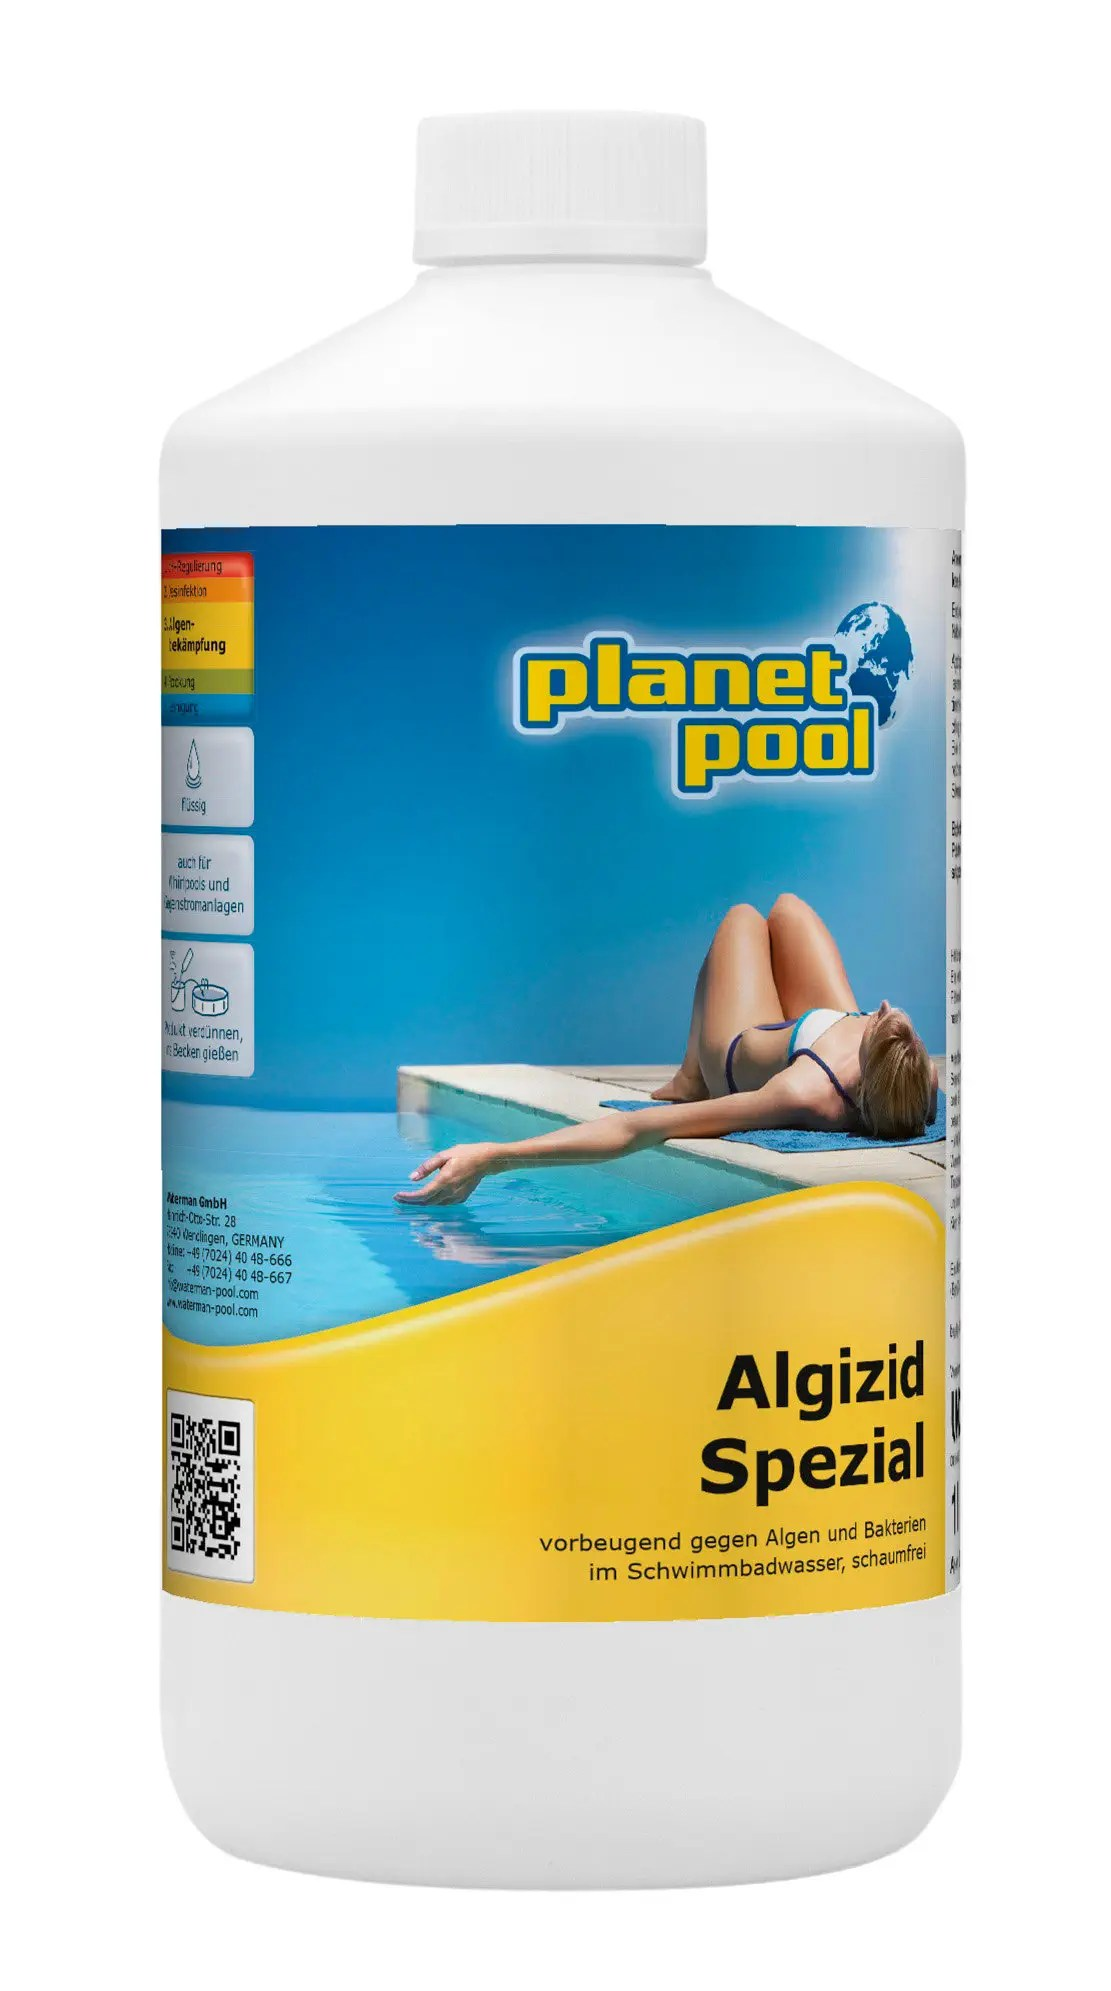 Planet Pool Zubehör Planet Pool Algizid Spezial Migros